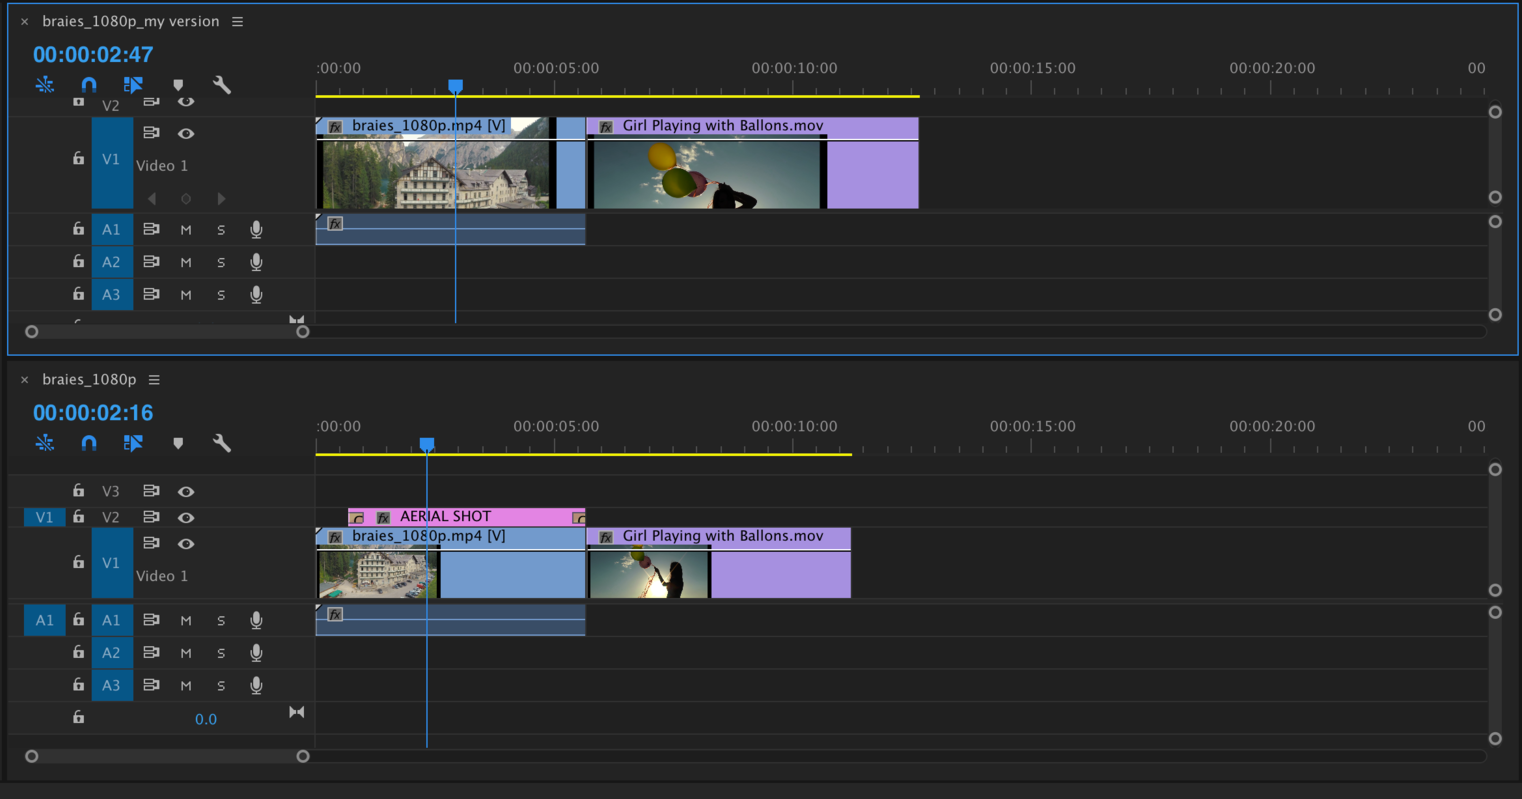 A timeline that compares two sequences after choosing copy and rename your version in the resolve conflicts window.